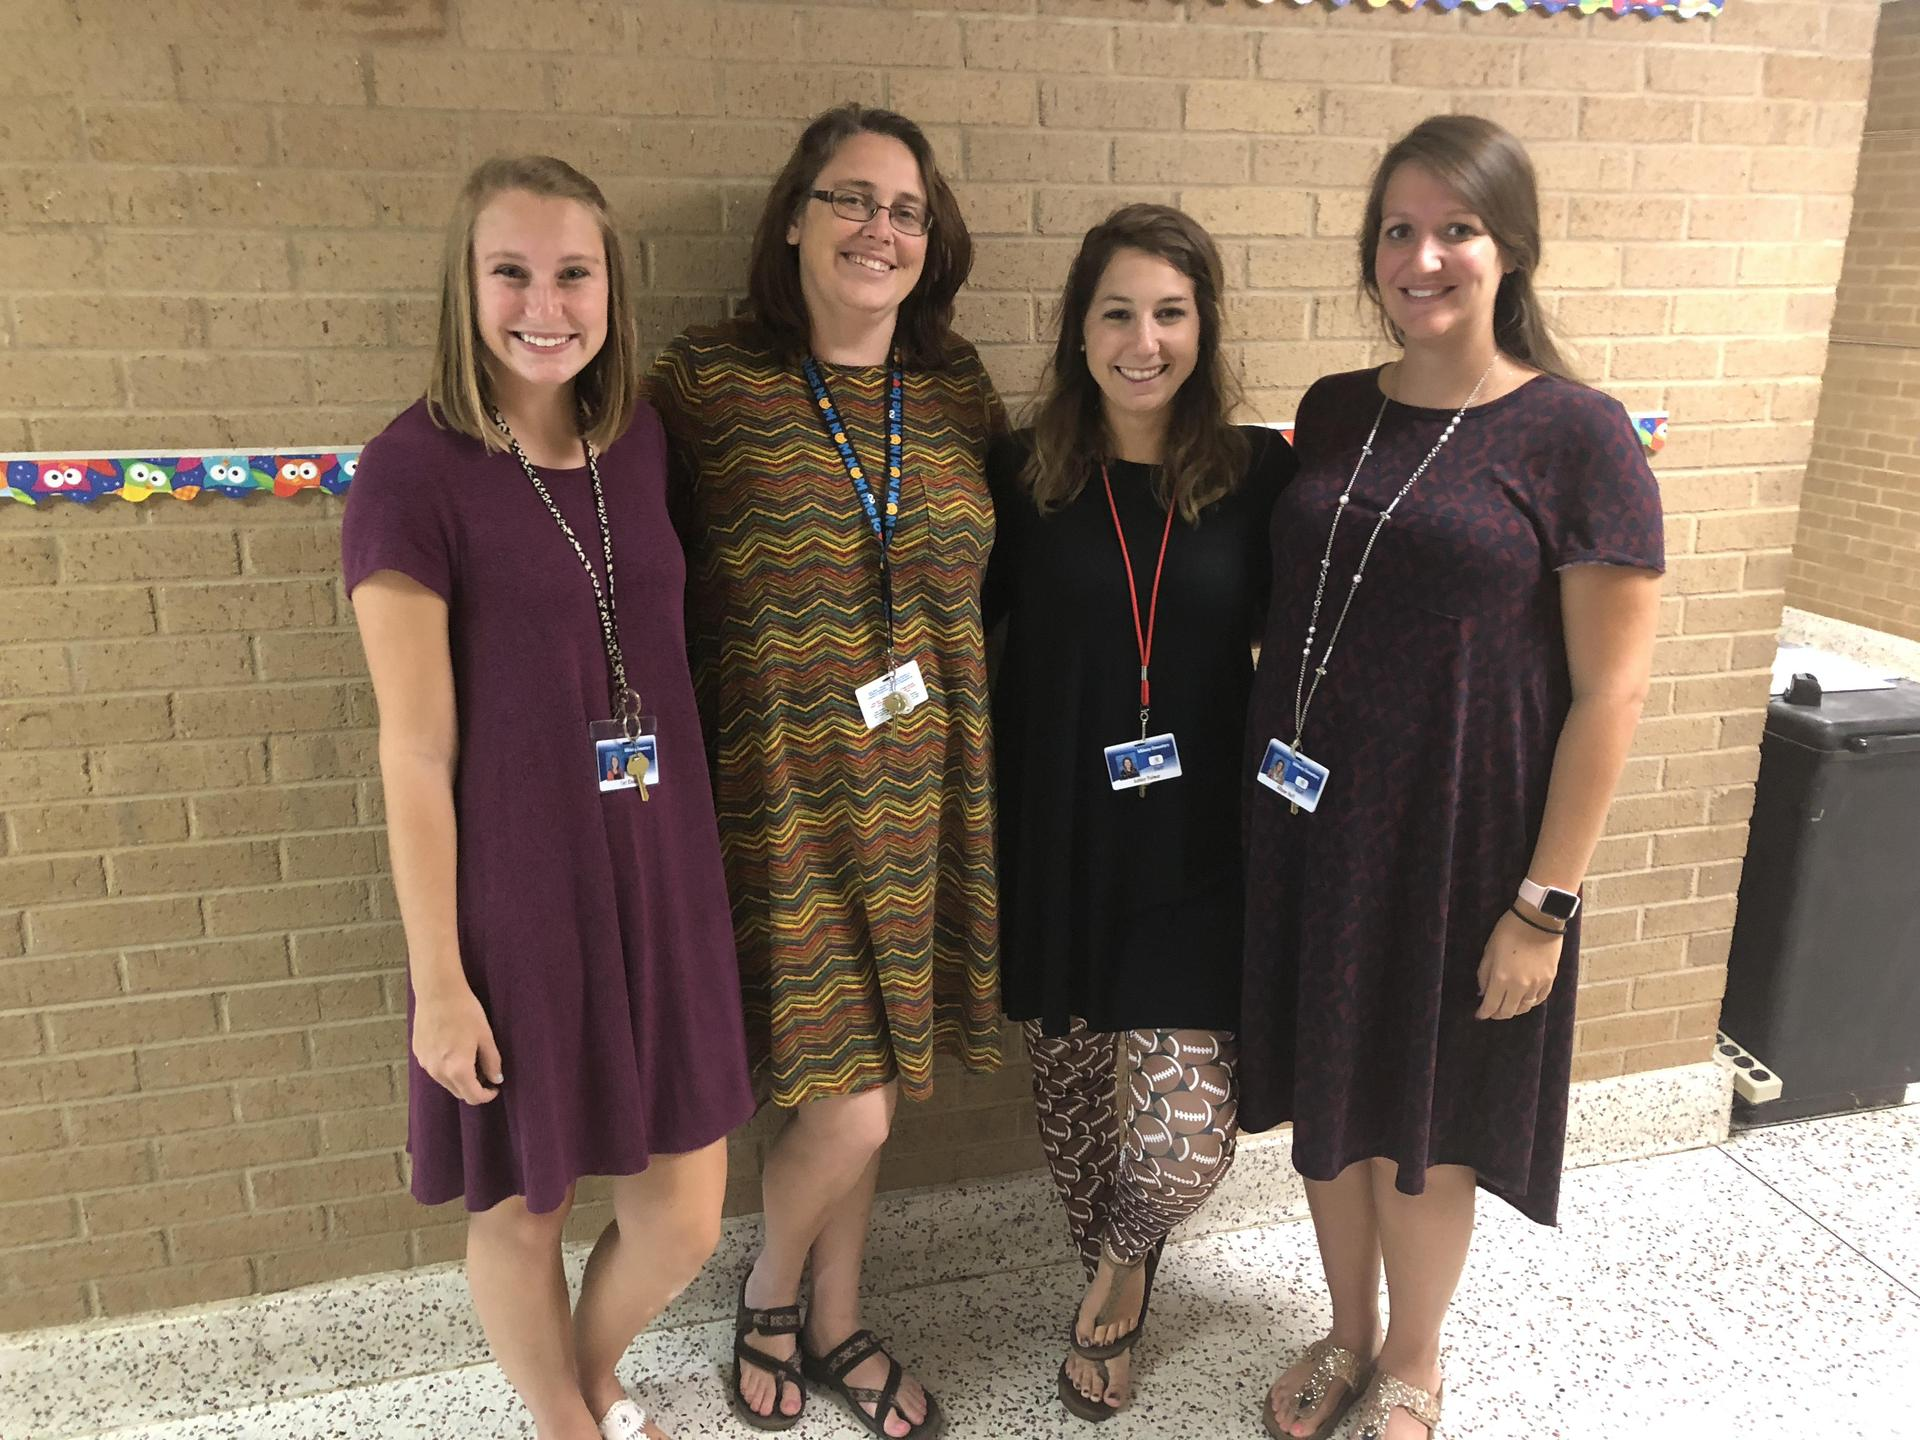 Photo of the kindergarten team - Nanney, Holcomb, Palmer, and Huff